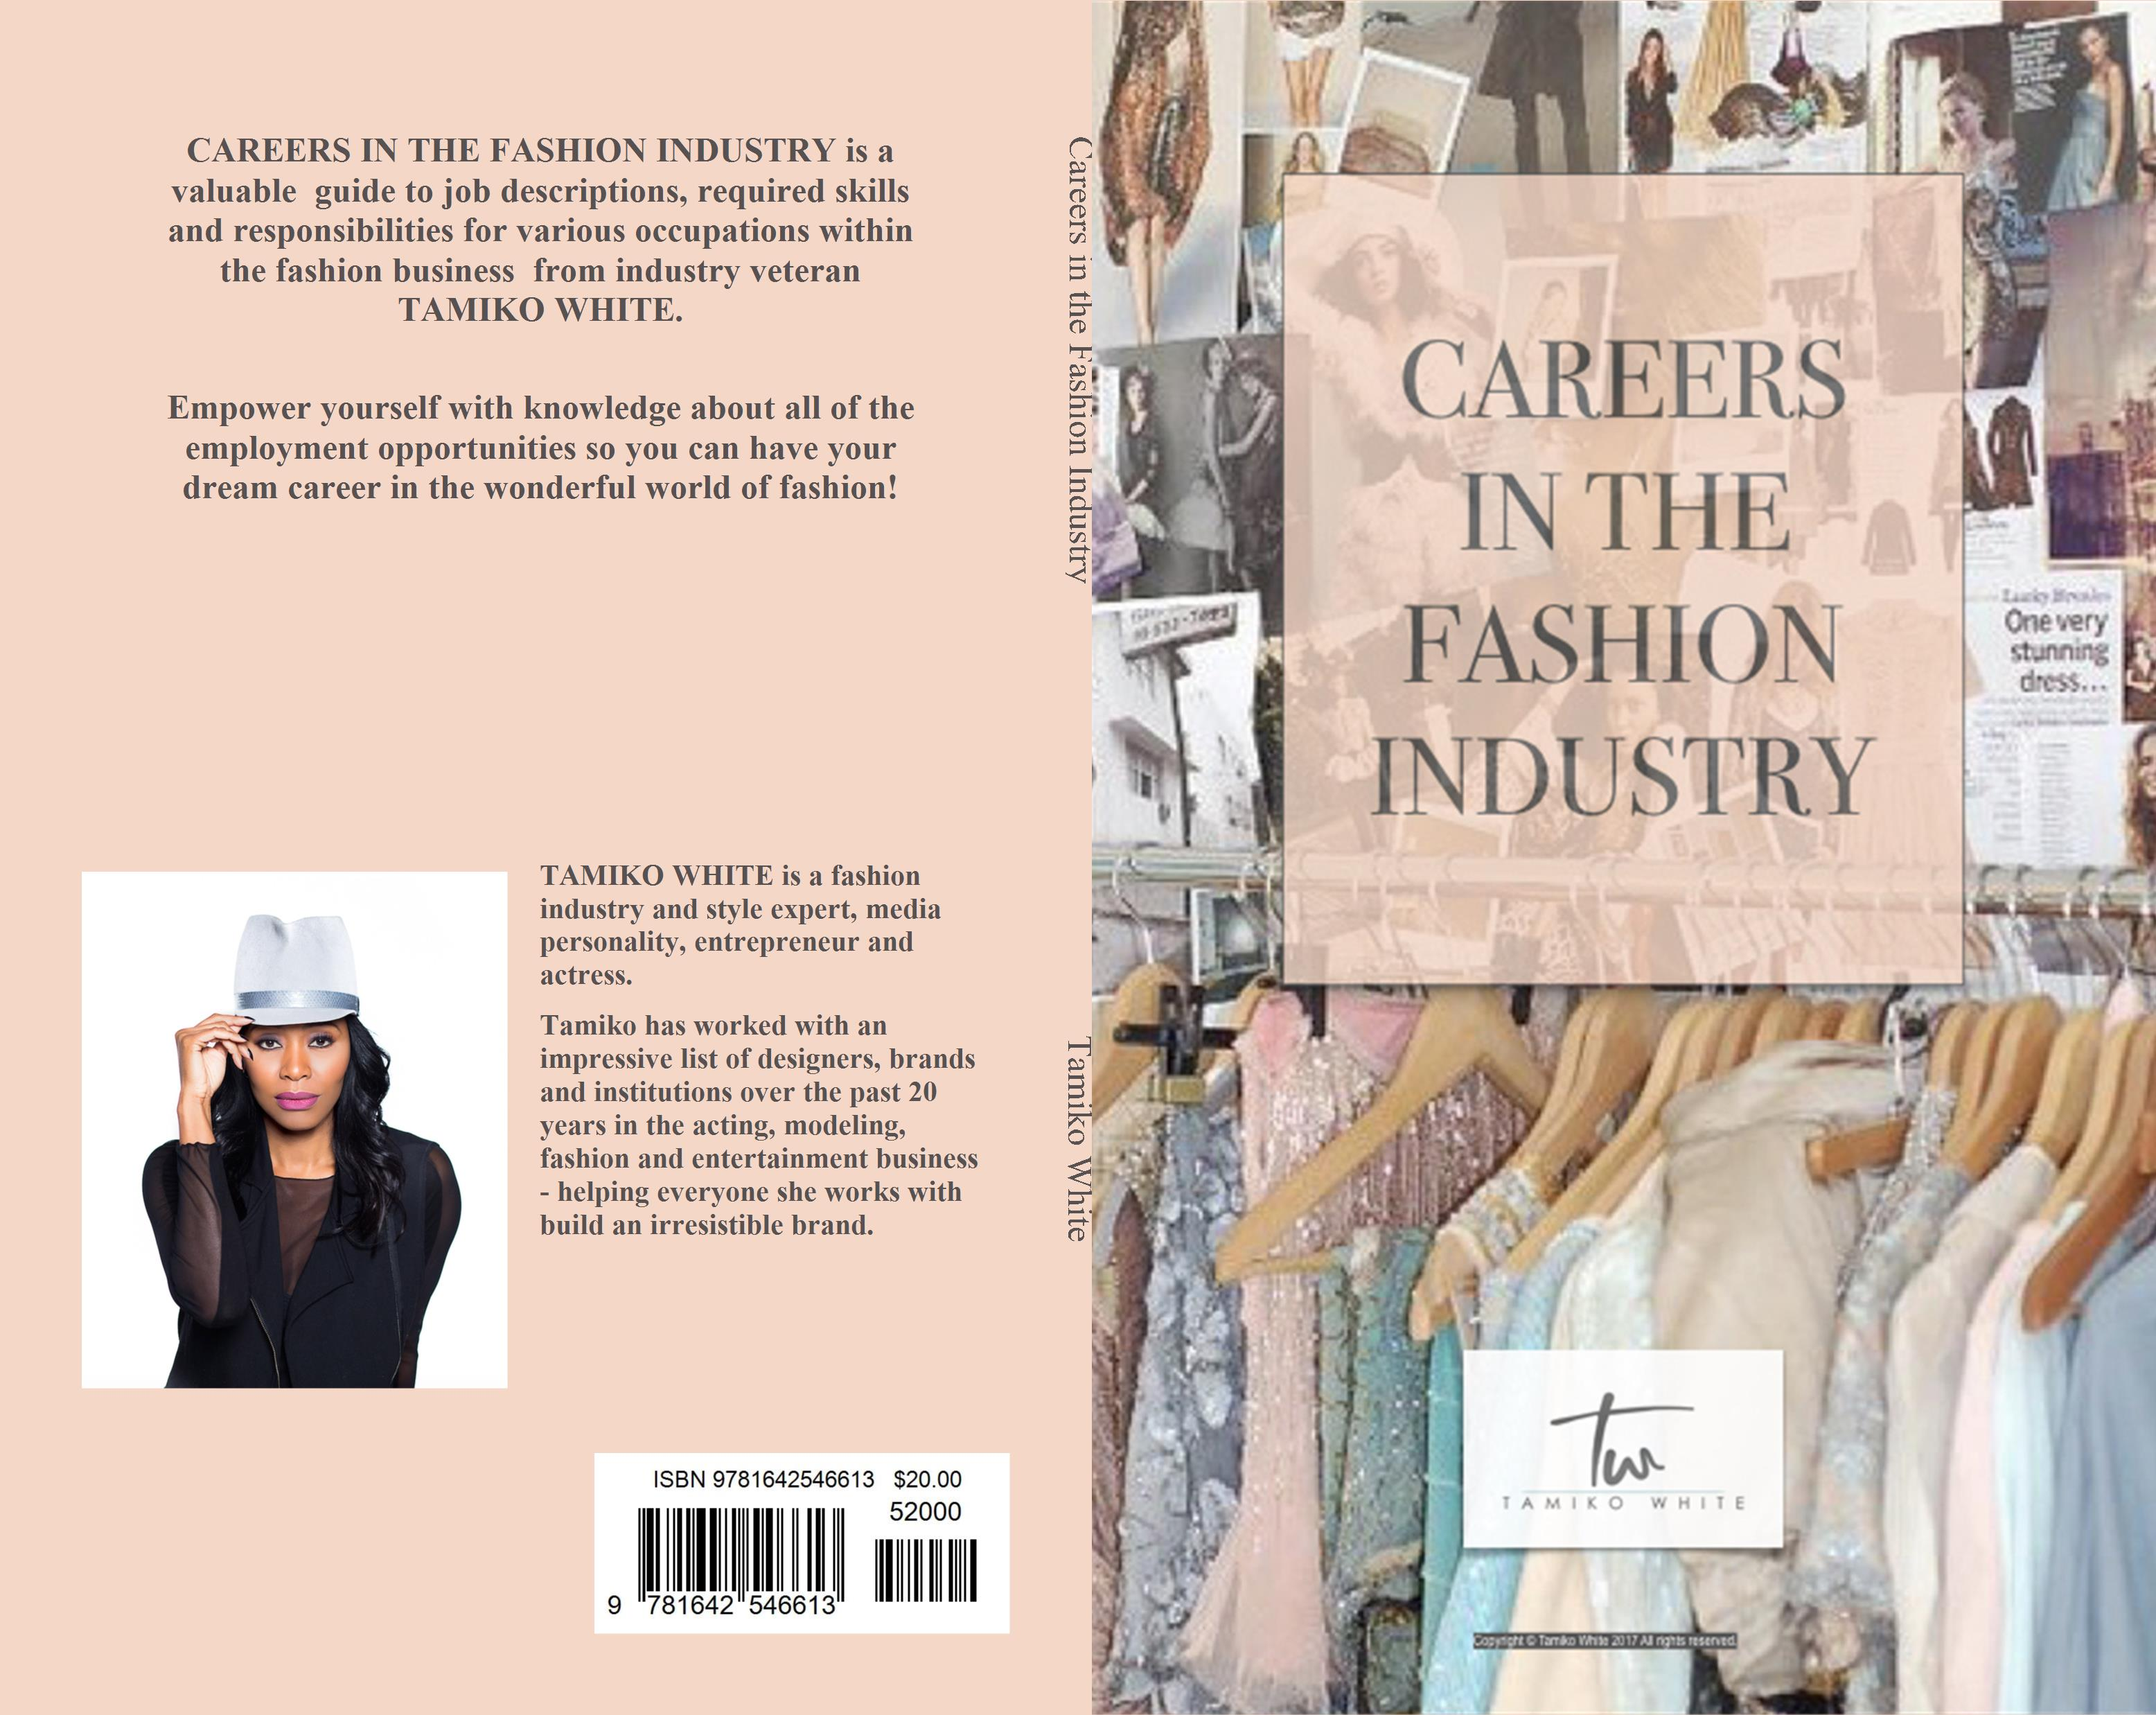 CAREERS IN THE FASHION INDUSTRY cover image